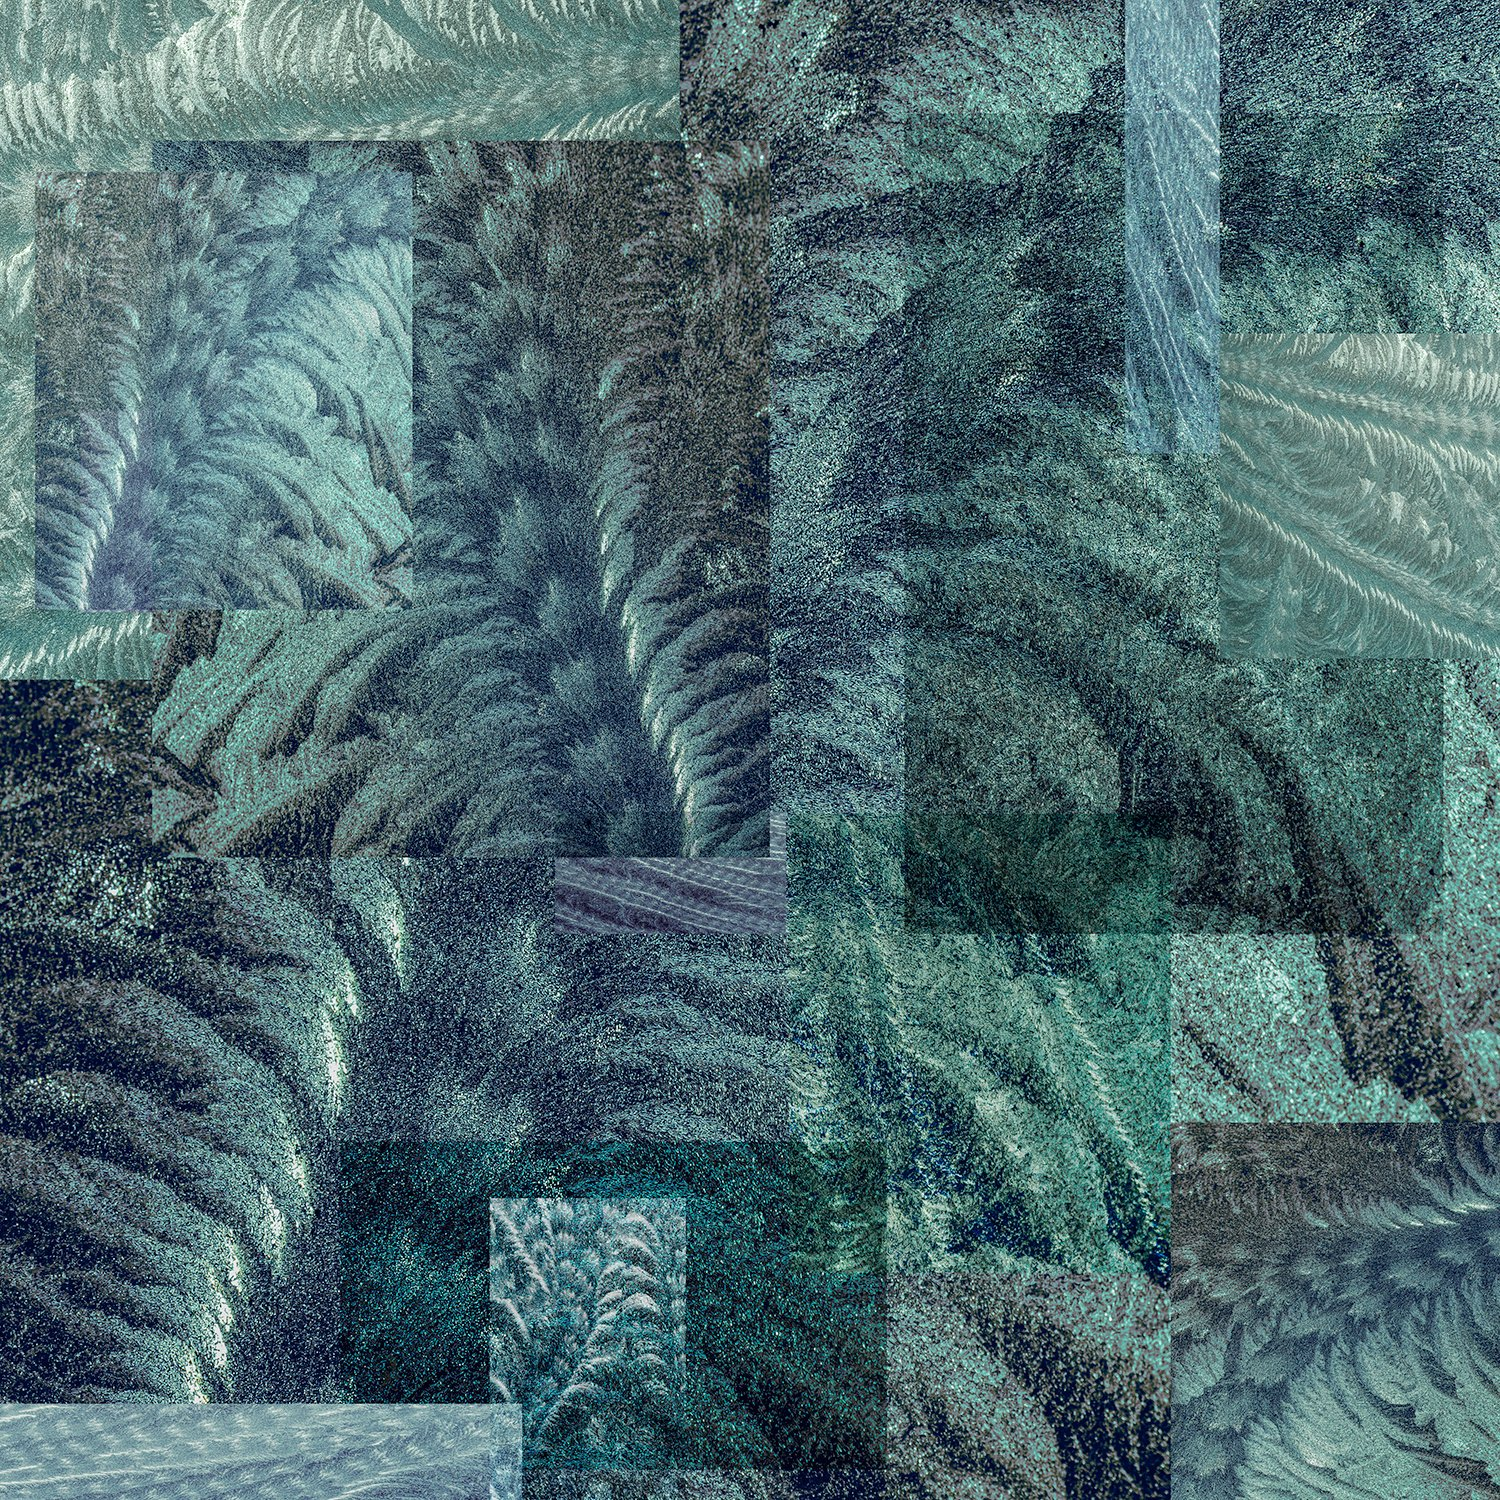 collage-shapes-textures-frost-patterns-blue-dark-green-pressed-glass-fern-scroll